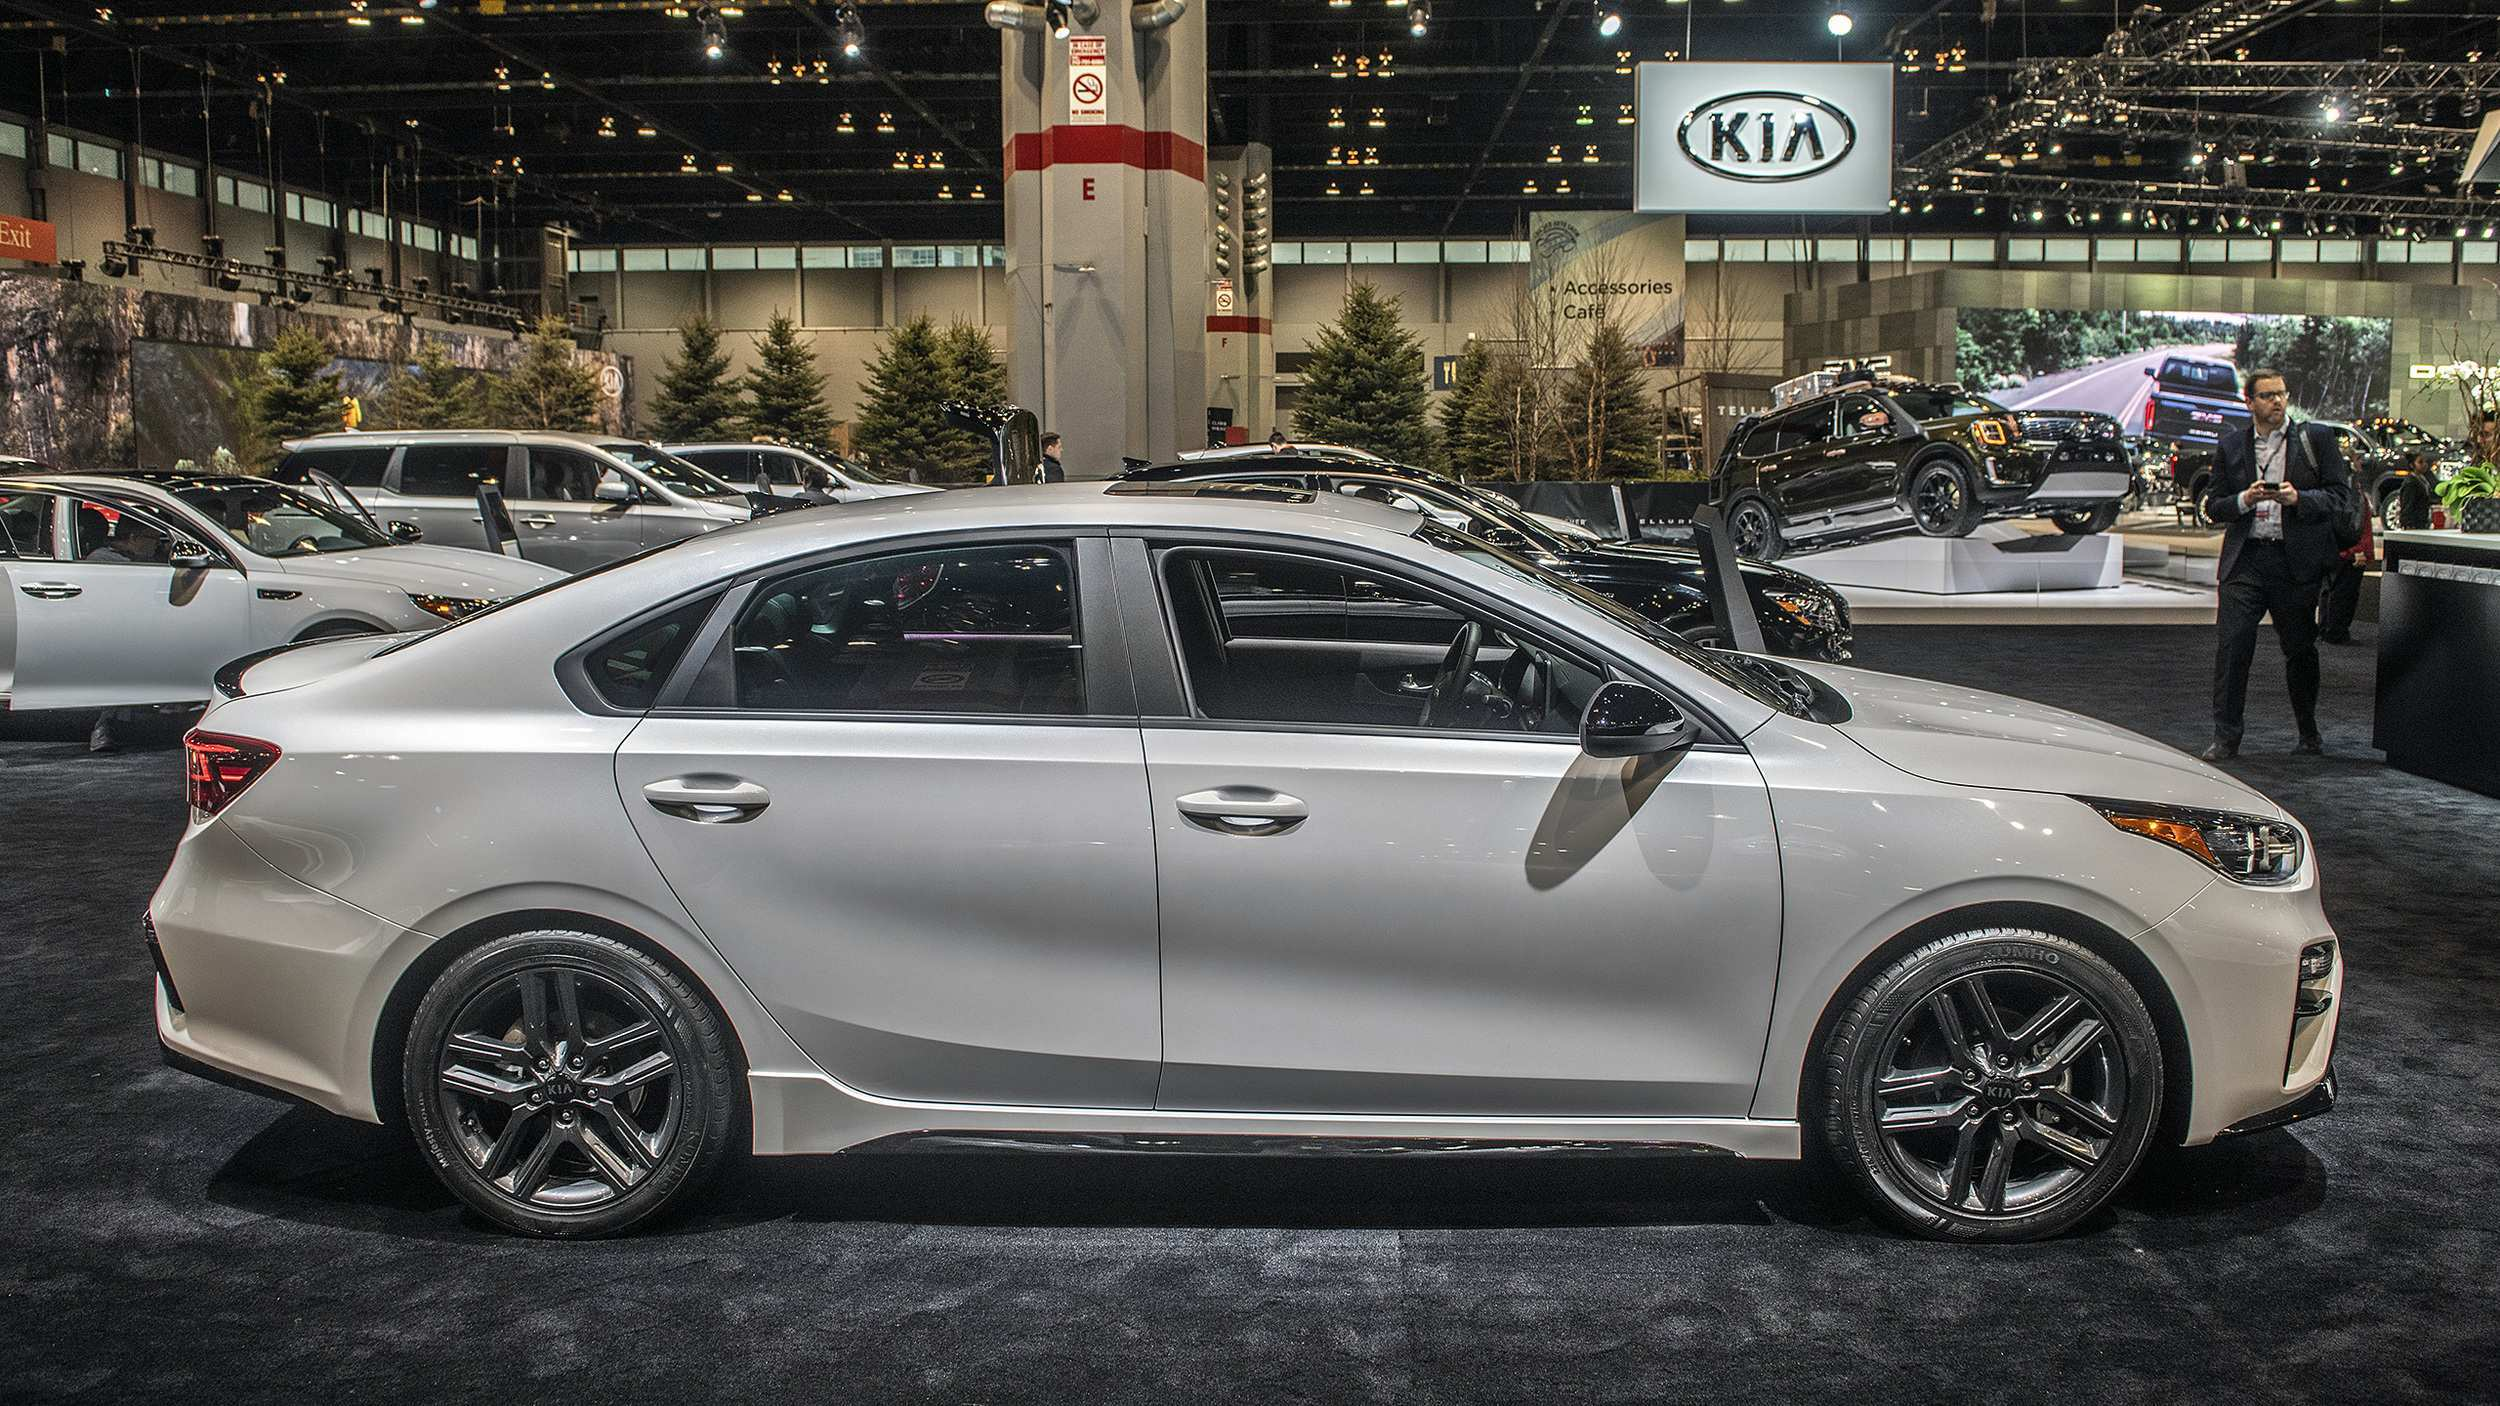 50 All New Kia Forte Gt 2020 Price Price And Release Date